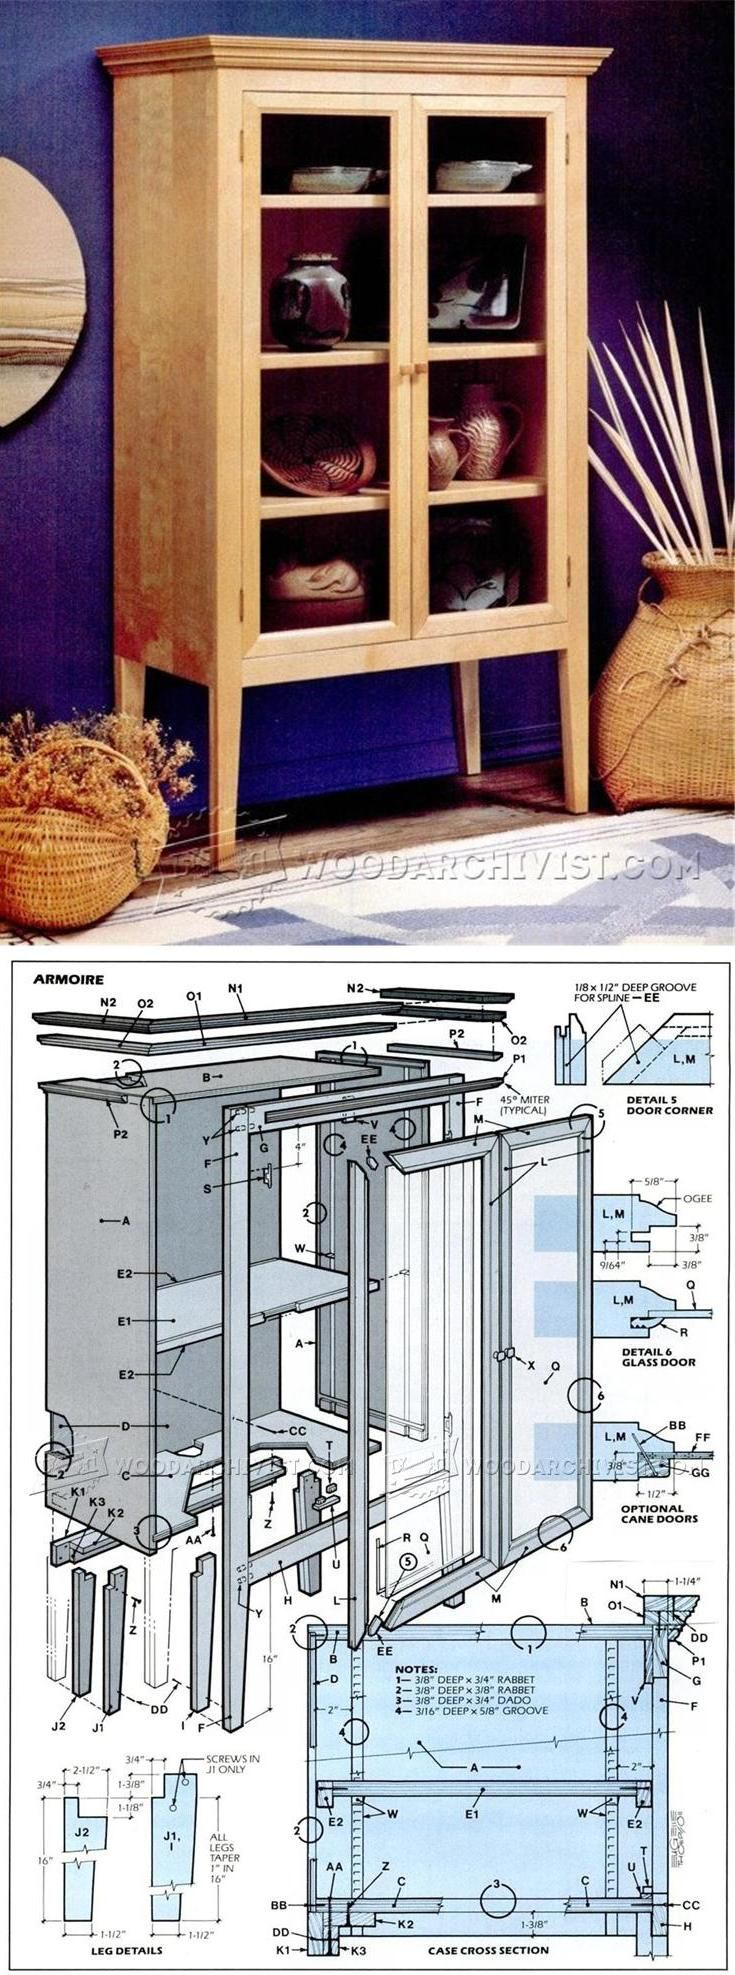 Shaker bedroom furniture plans - Armoire Plans Furniture Plans And Projects Woodarchivist Com